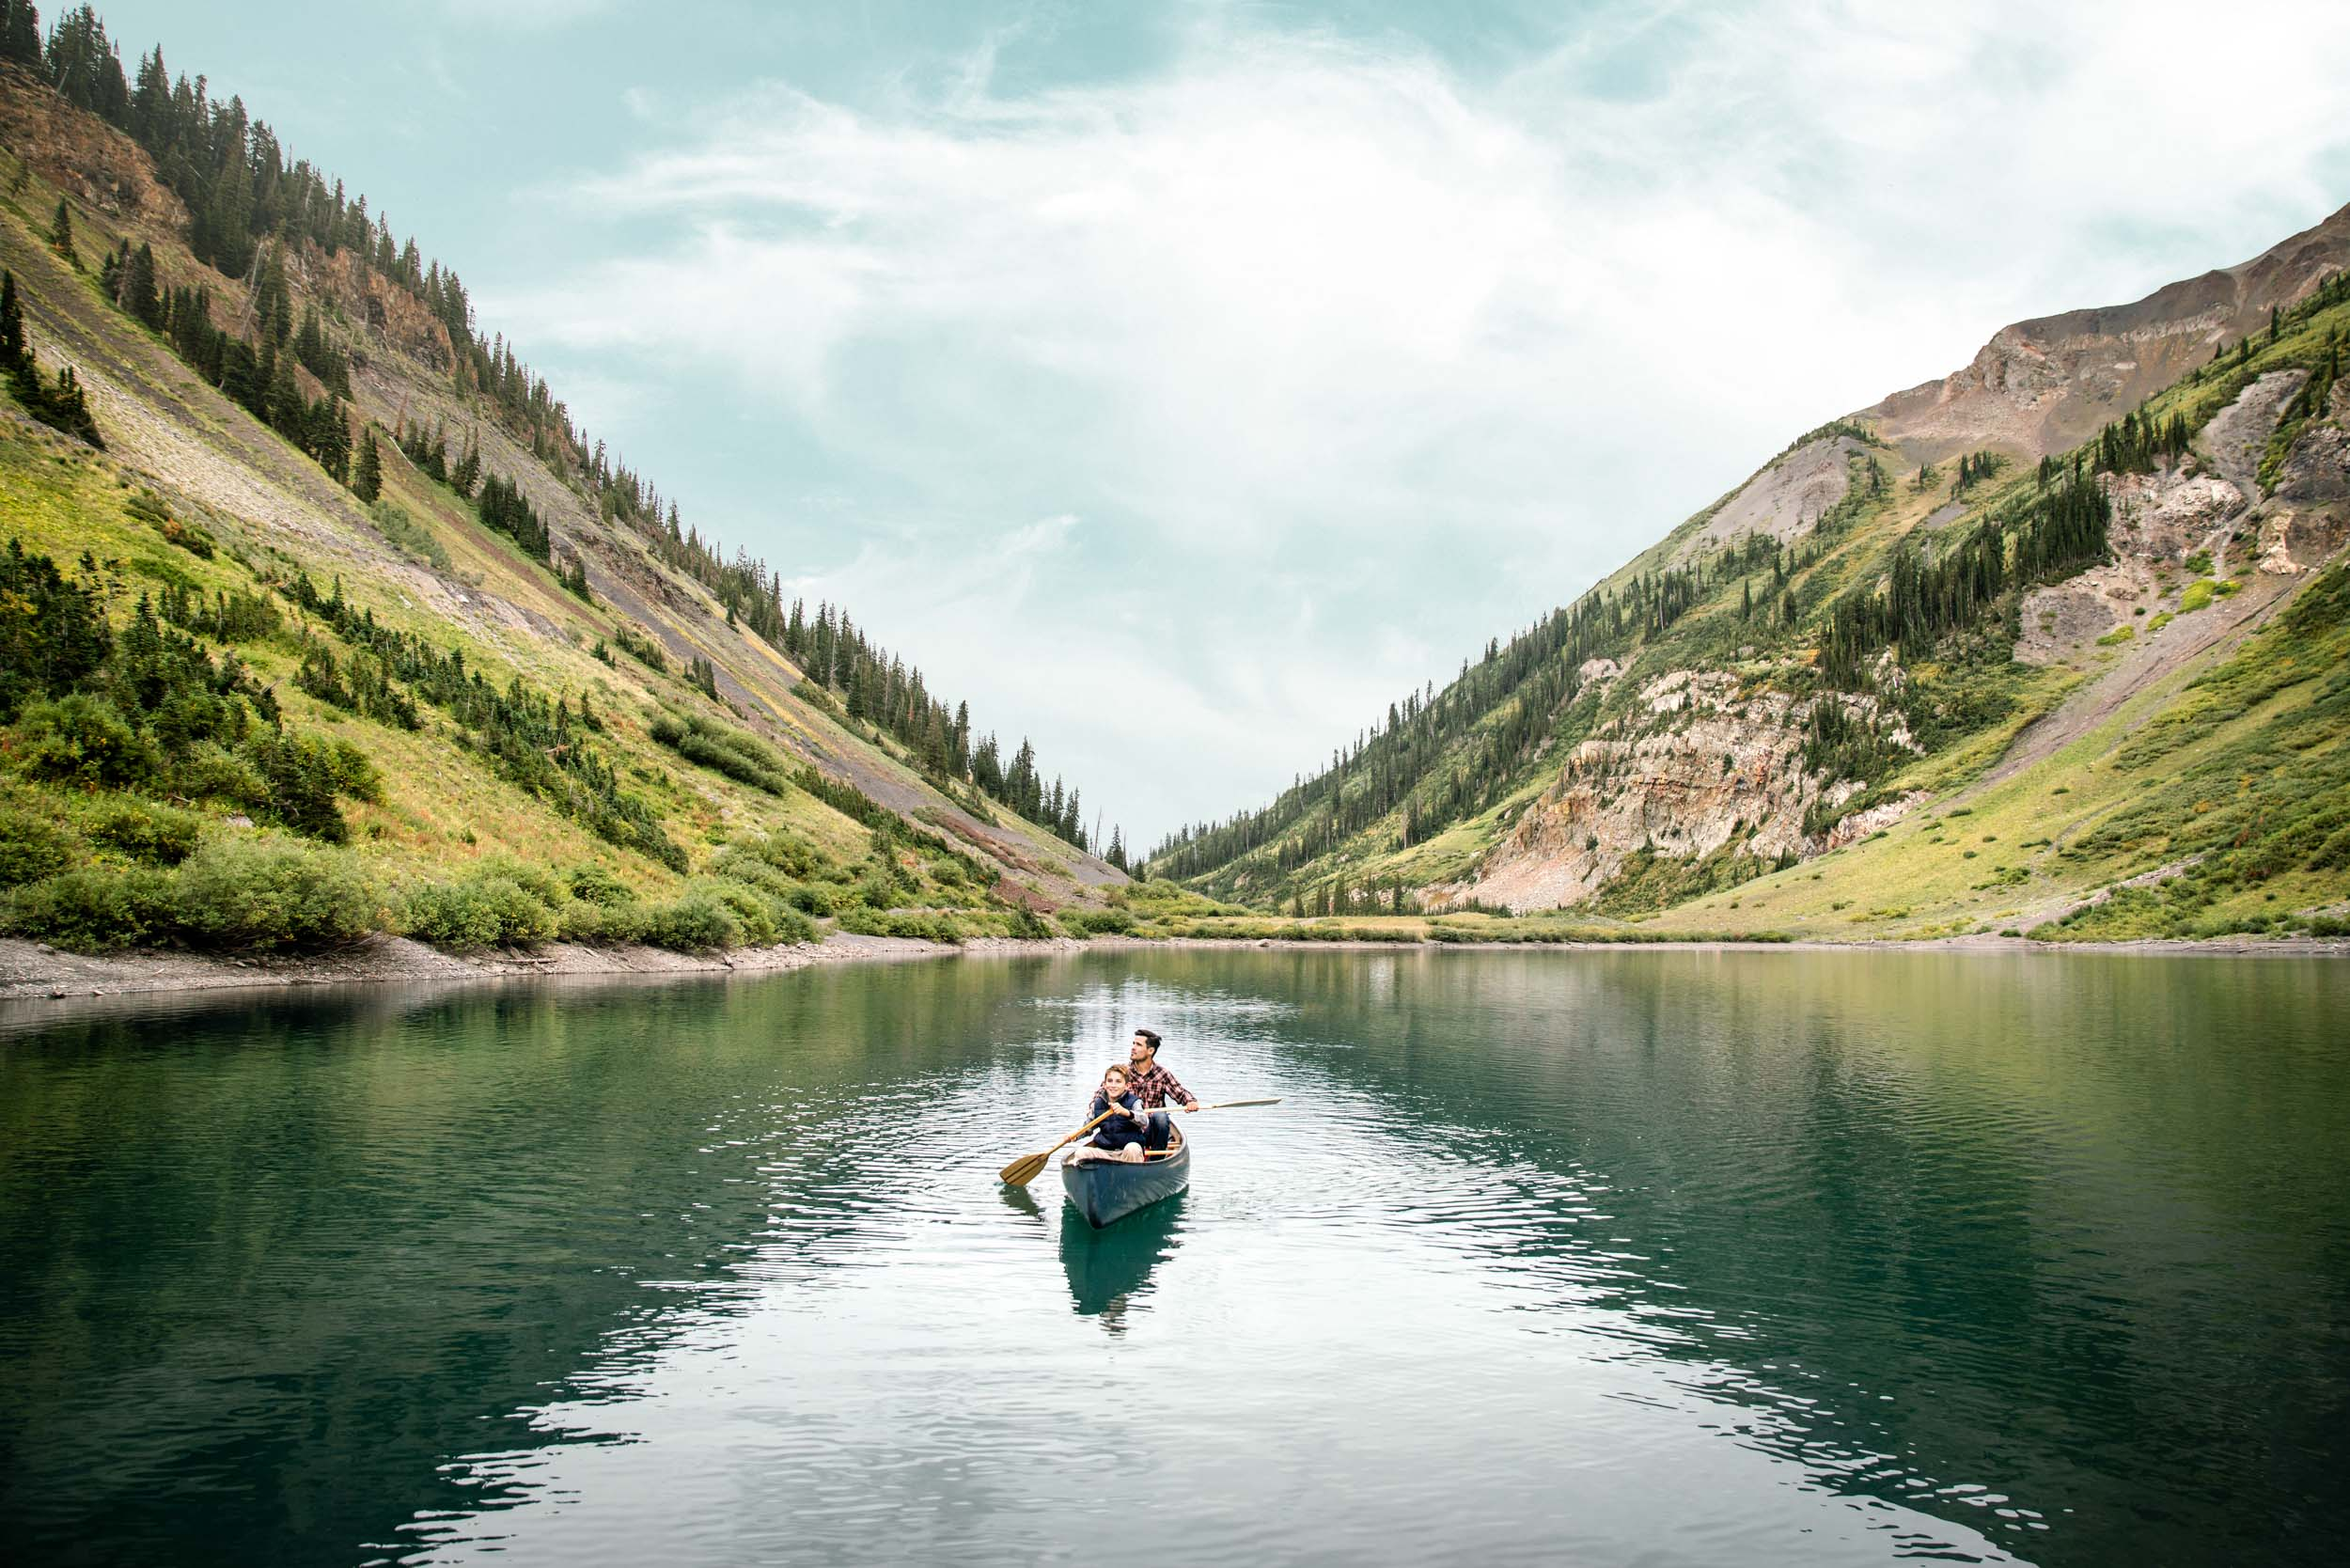 Father and son canoeing together in a mountain lake in the Colorado rockies.